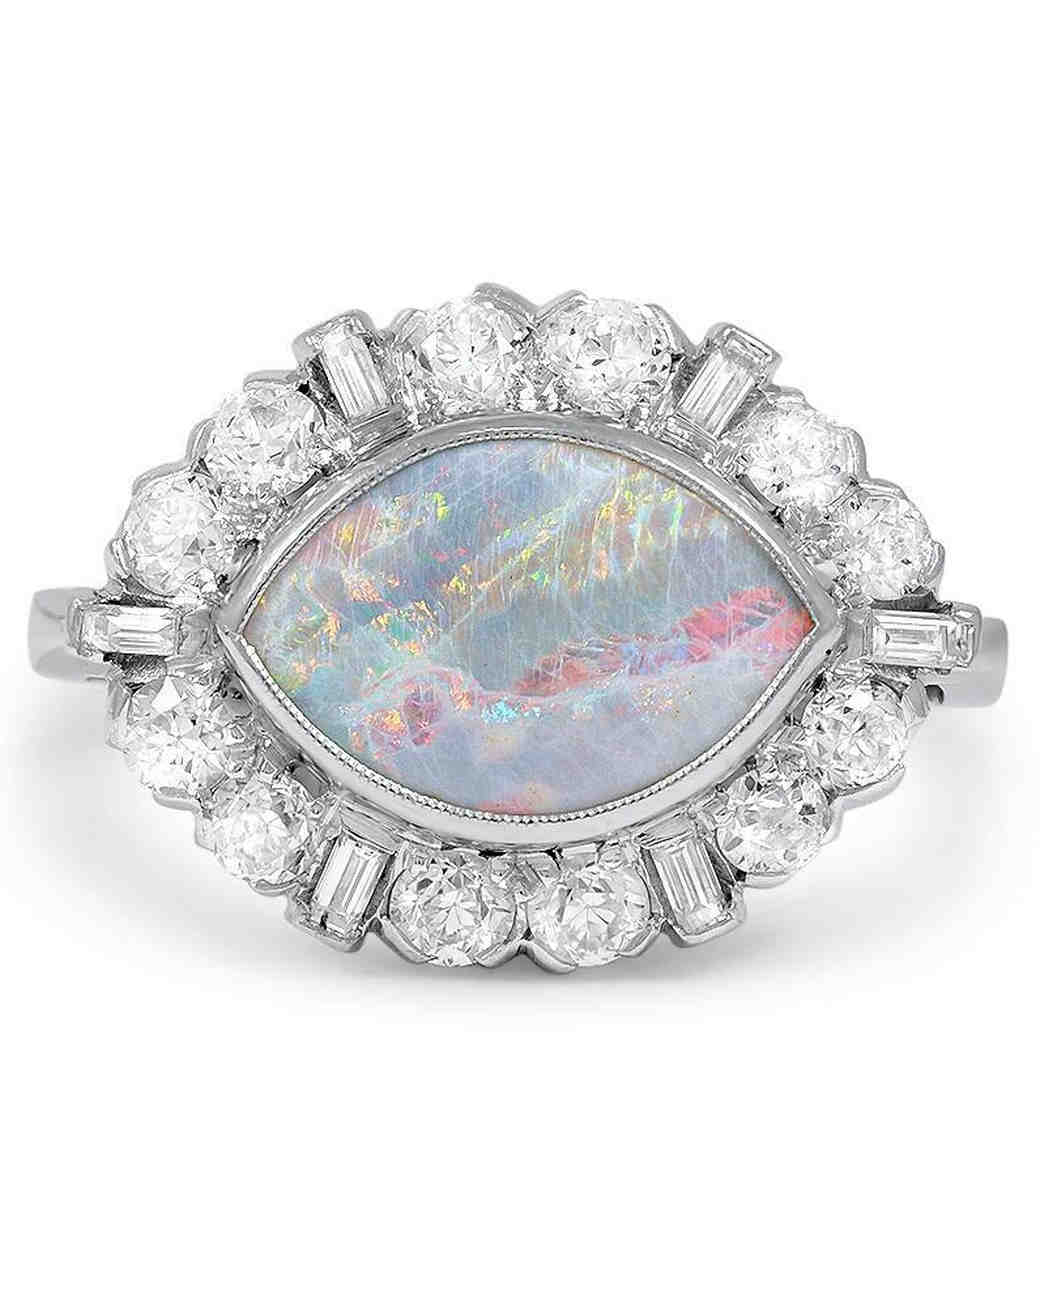 Brilliant Earth Opal Engagement Ring